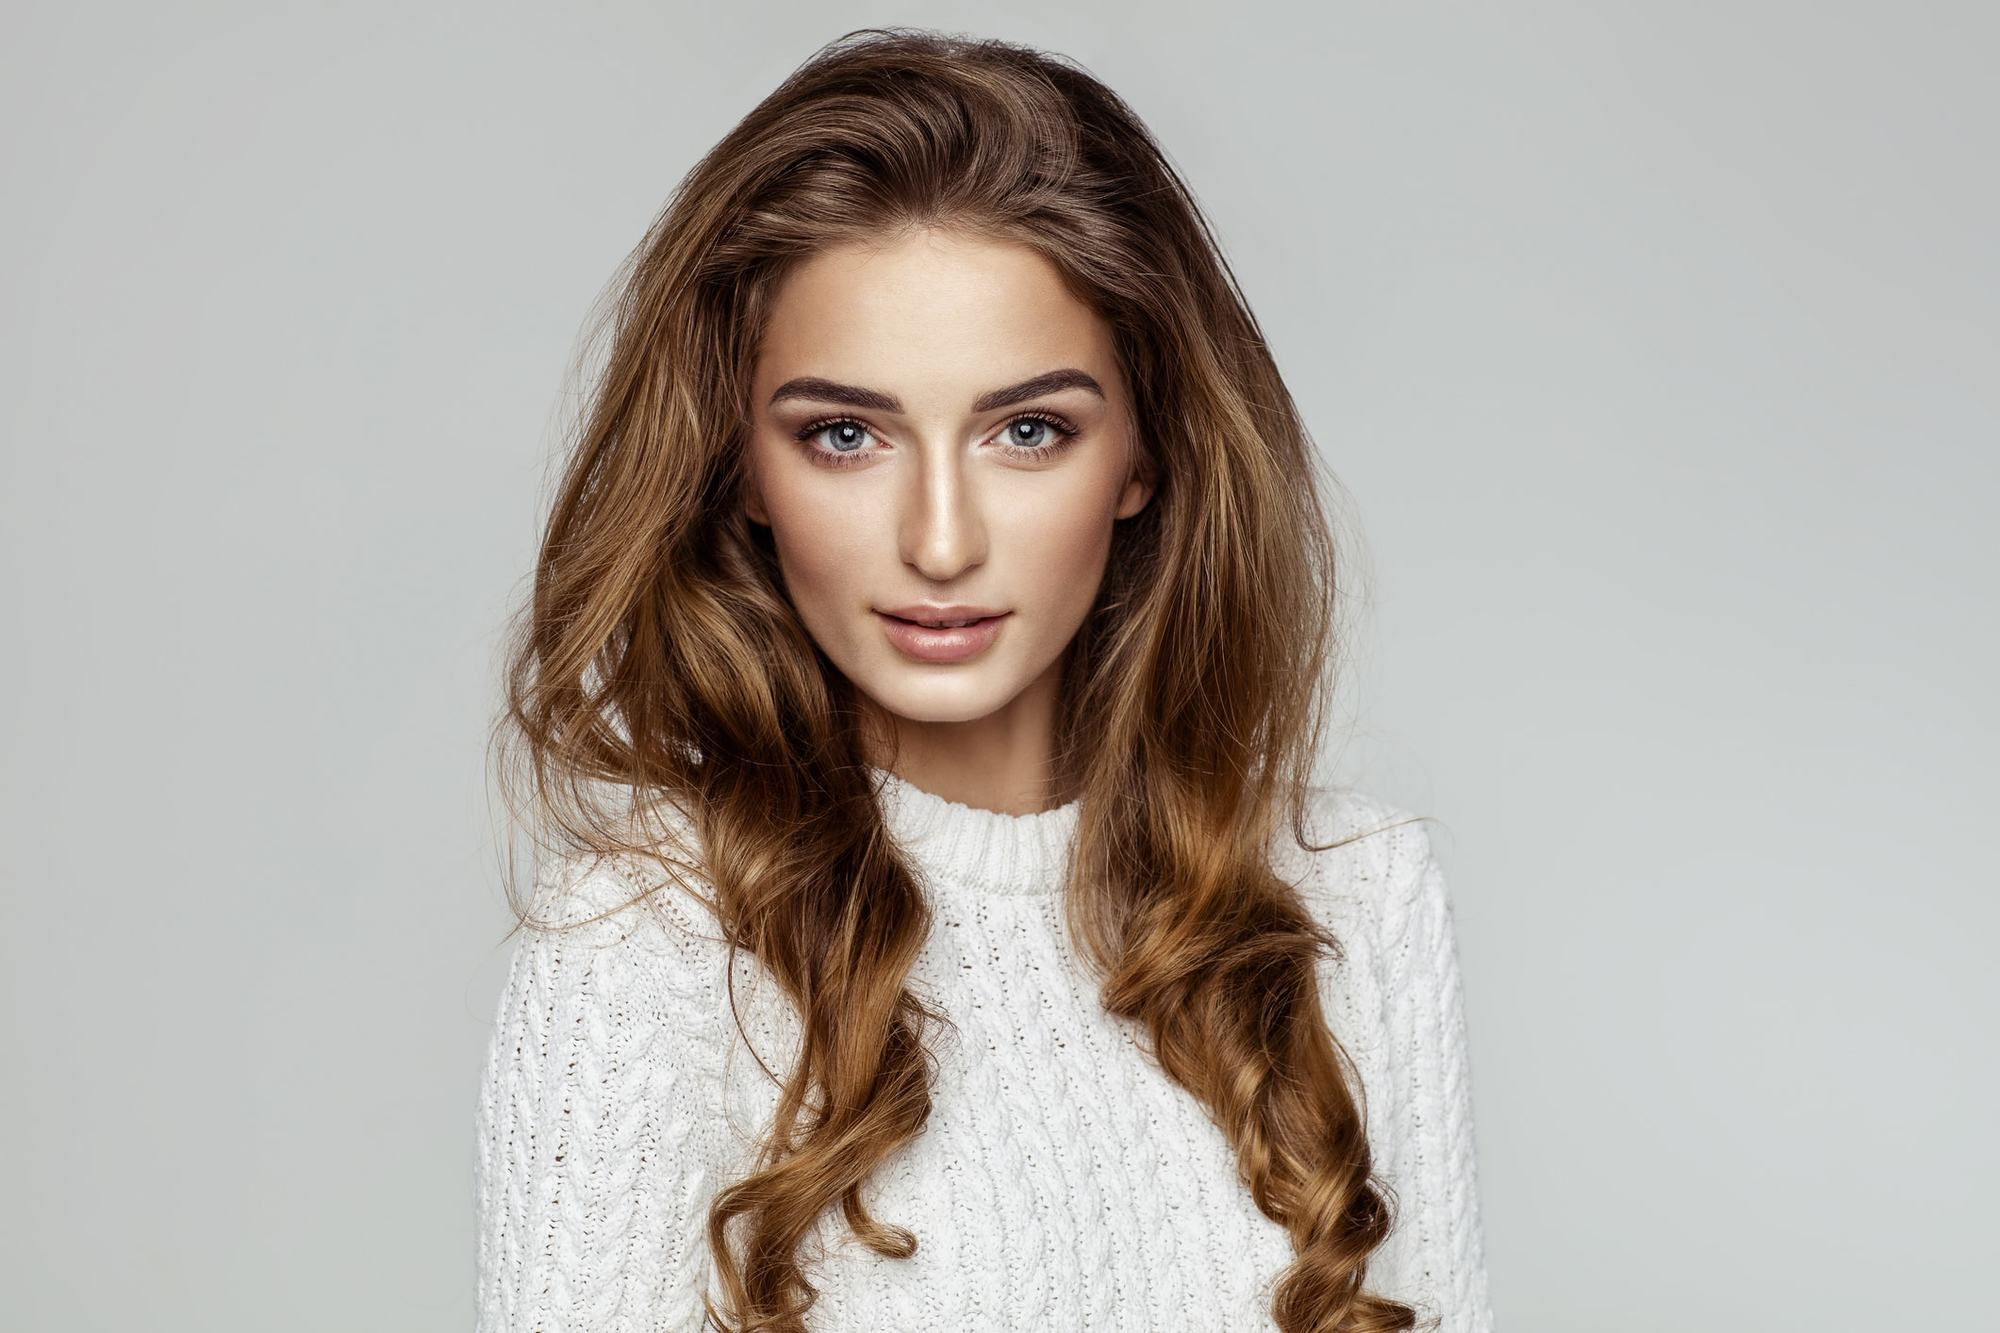 Honey Brown Hair: 20 Striking Shades Perfect for the Season